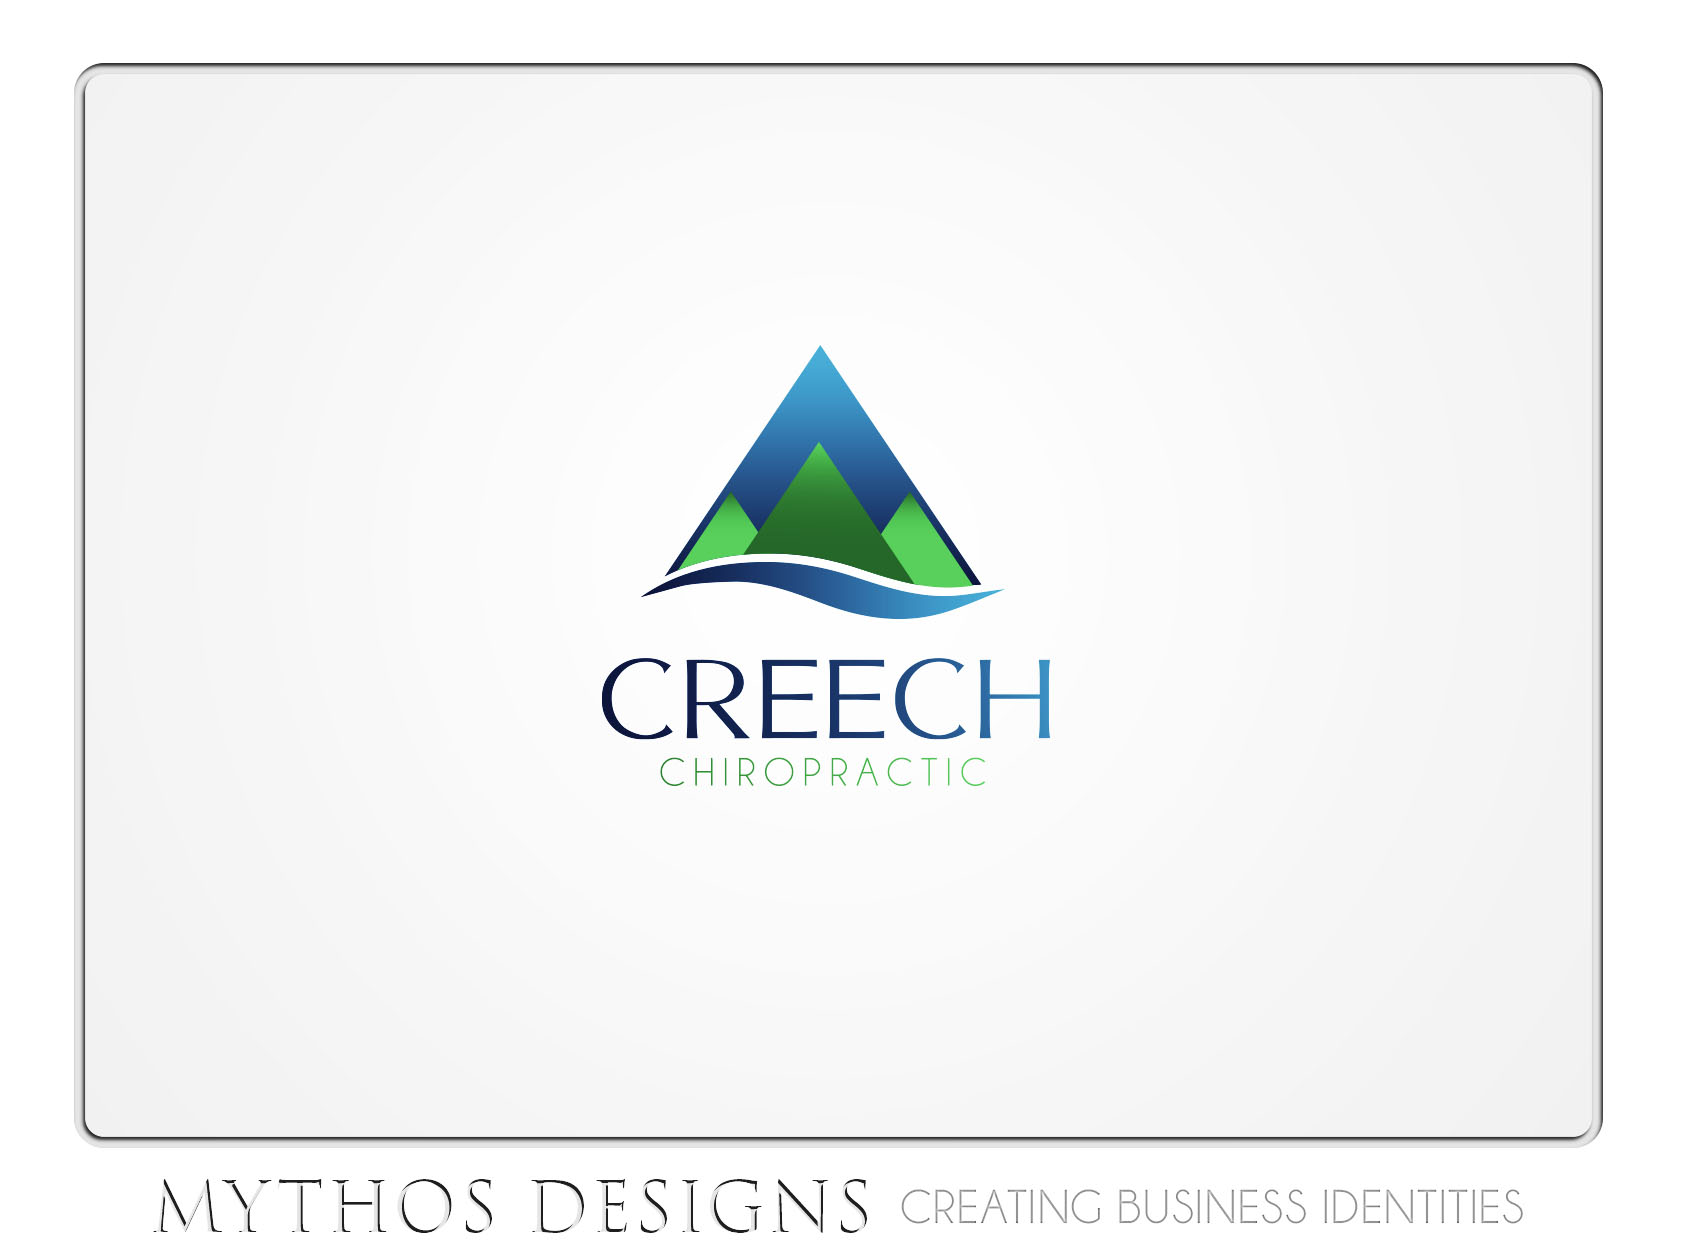 Logo Design by Mythos Designs - Entry No. 104 in the Logo Design Contest Imaginative Logo Design for Creech Chiropractic.